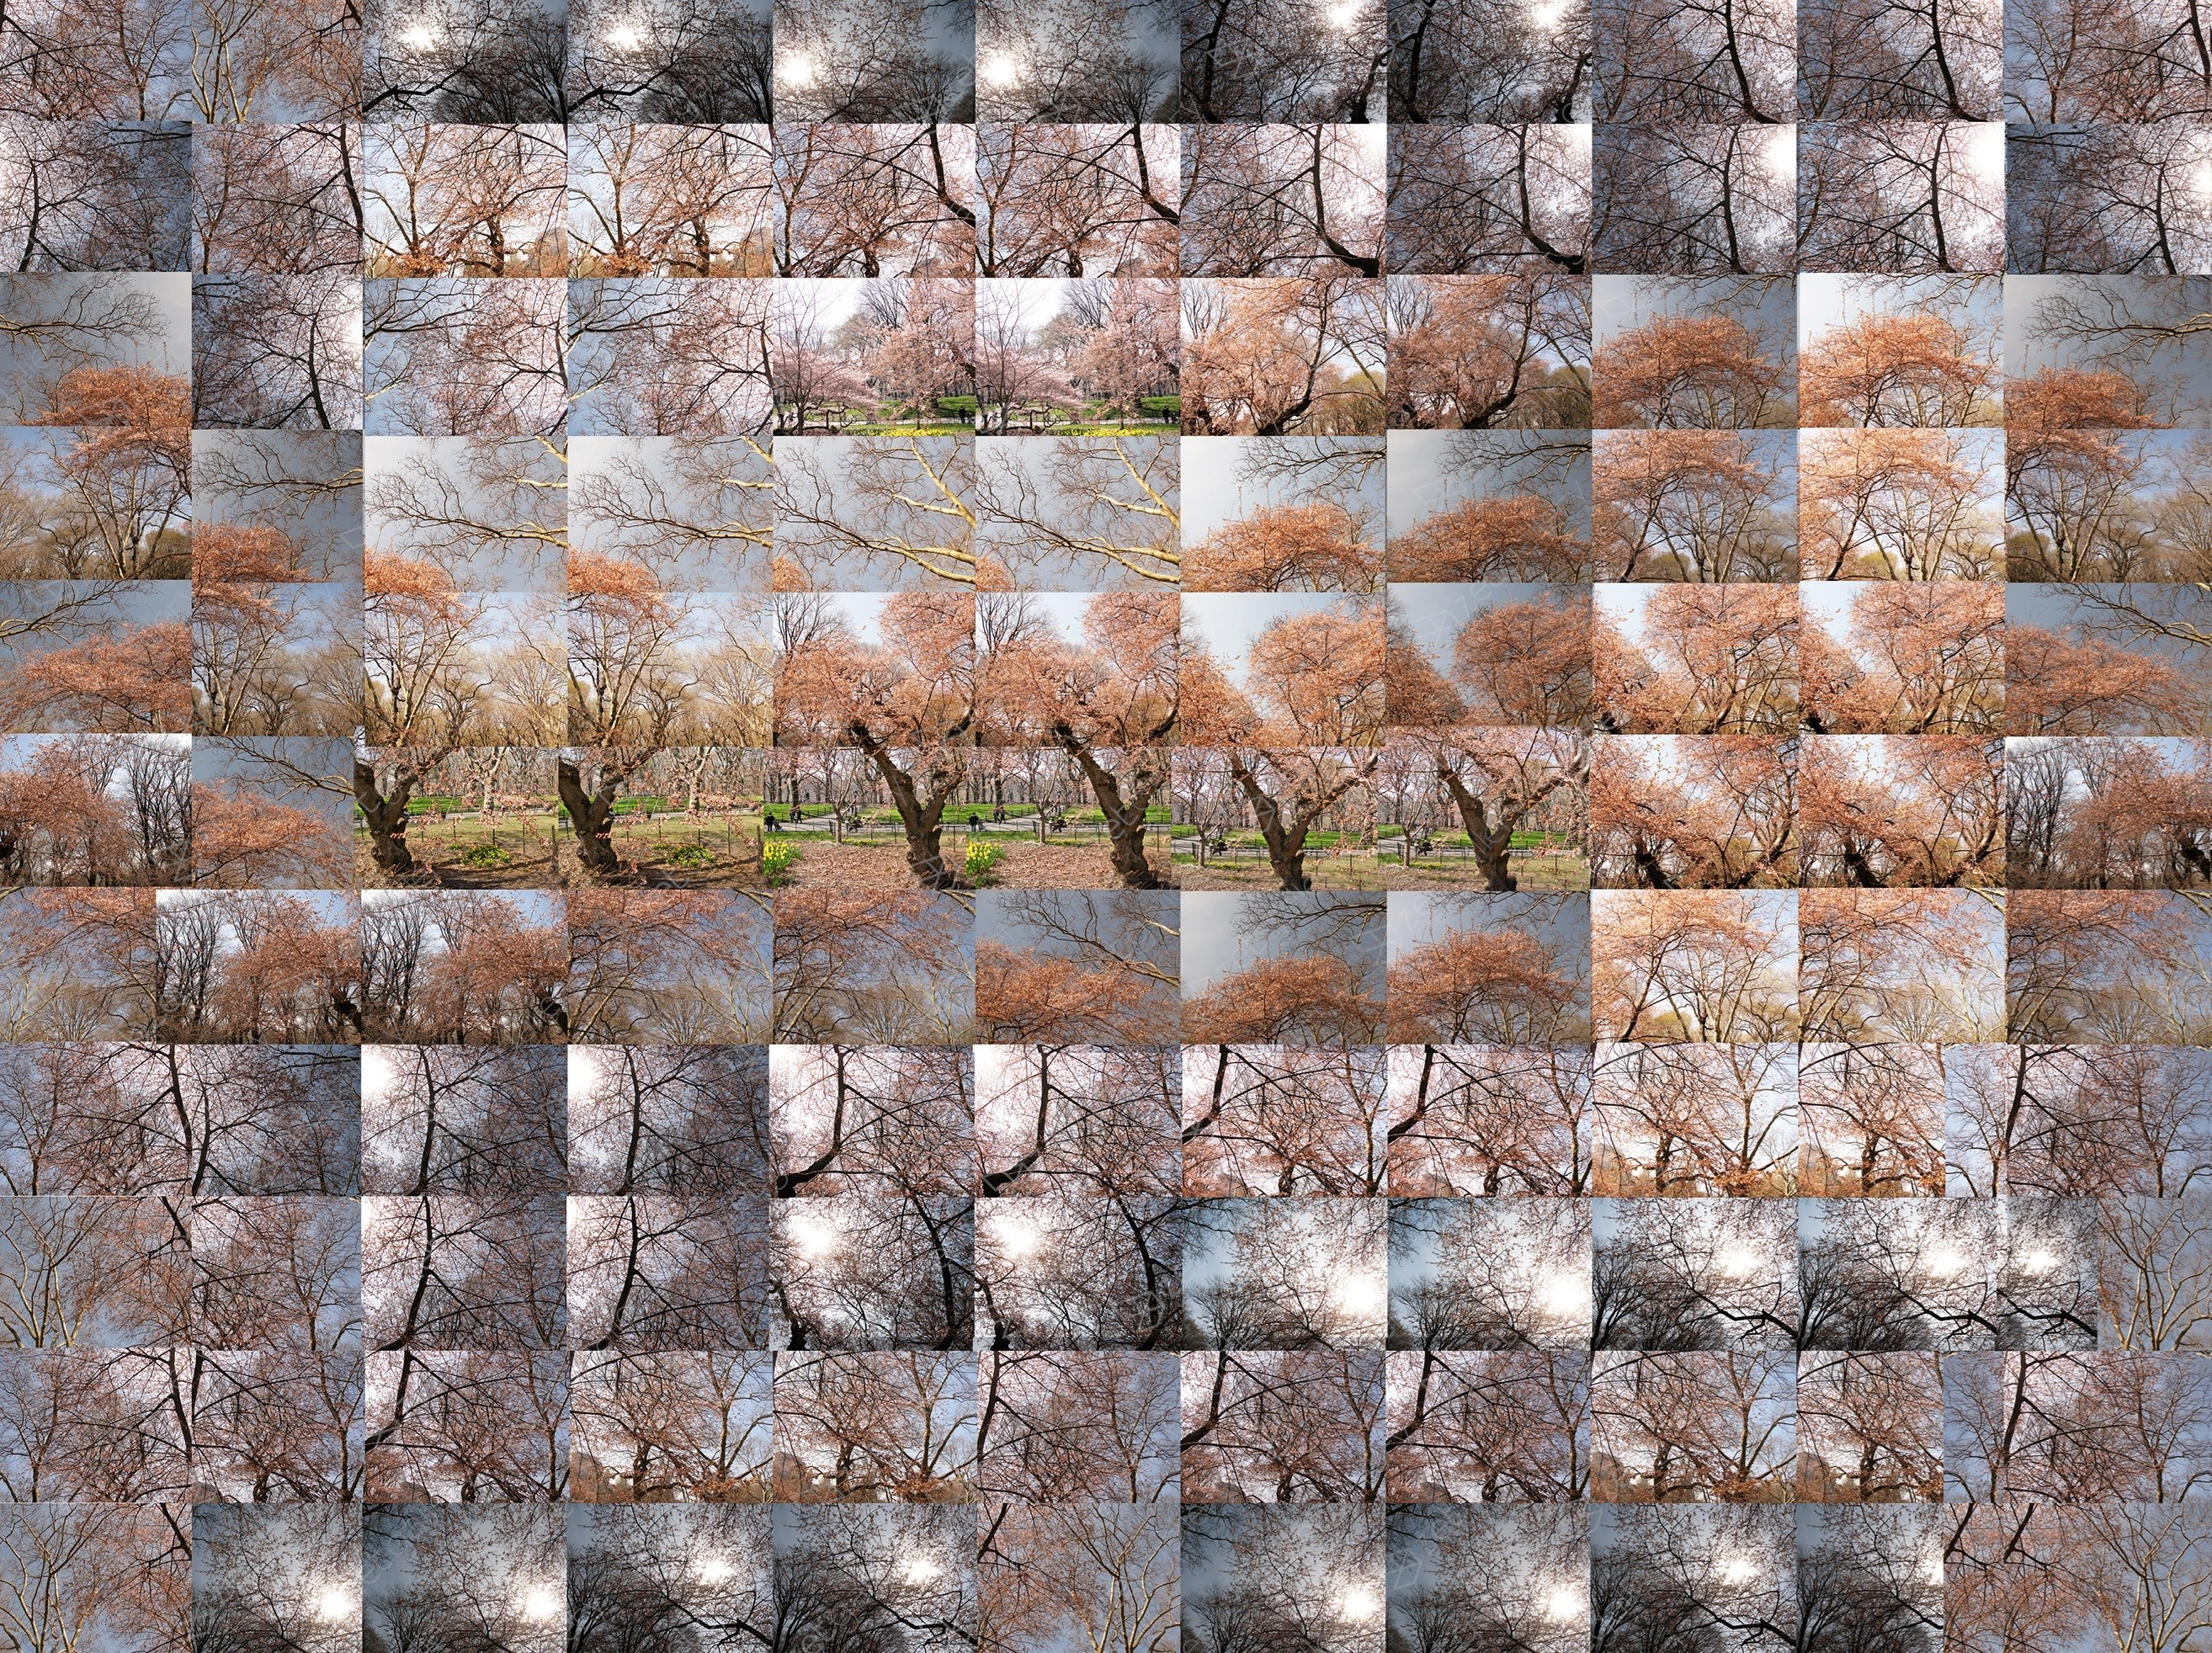 Spring - A Stroll By The Okame Cherry Tree, original Nature Digital Photography by Shimon and Tammar Rothstein